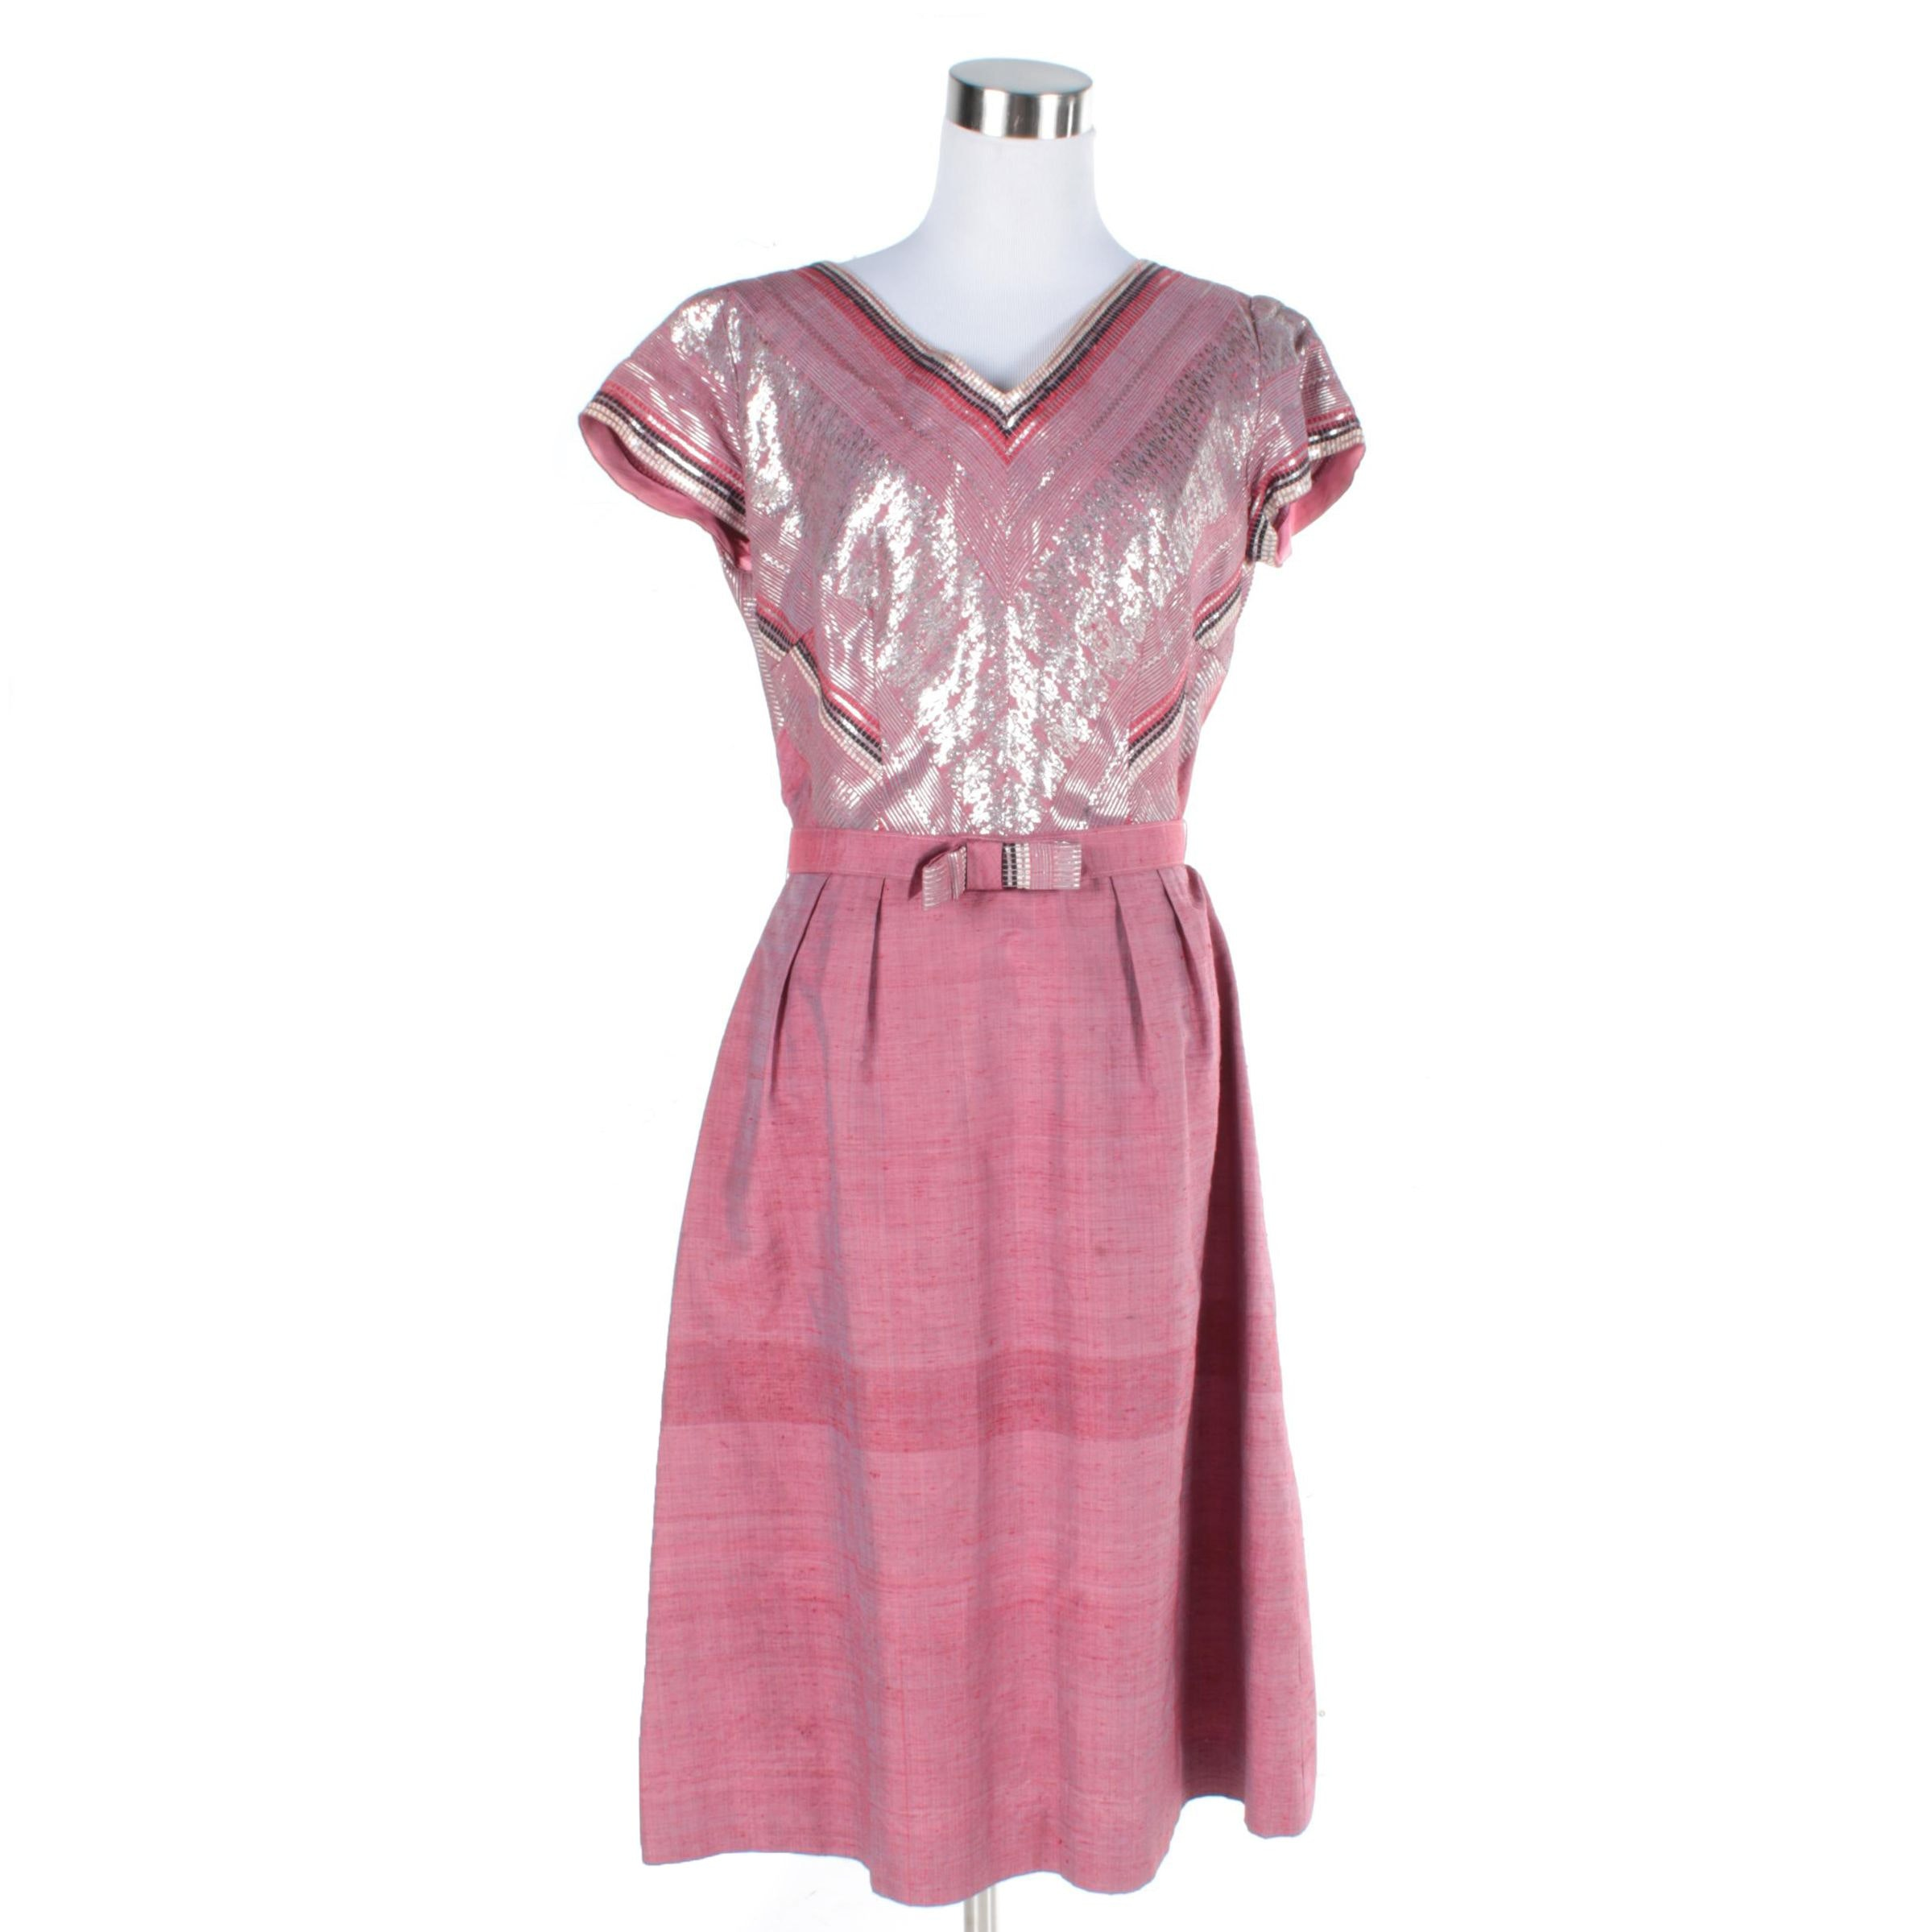 Vintage Pink Metallic Short Sleeved Dress